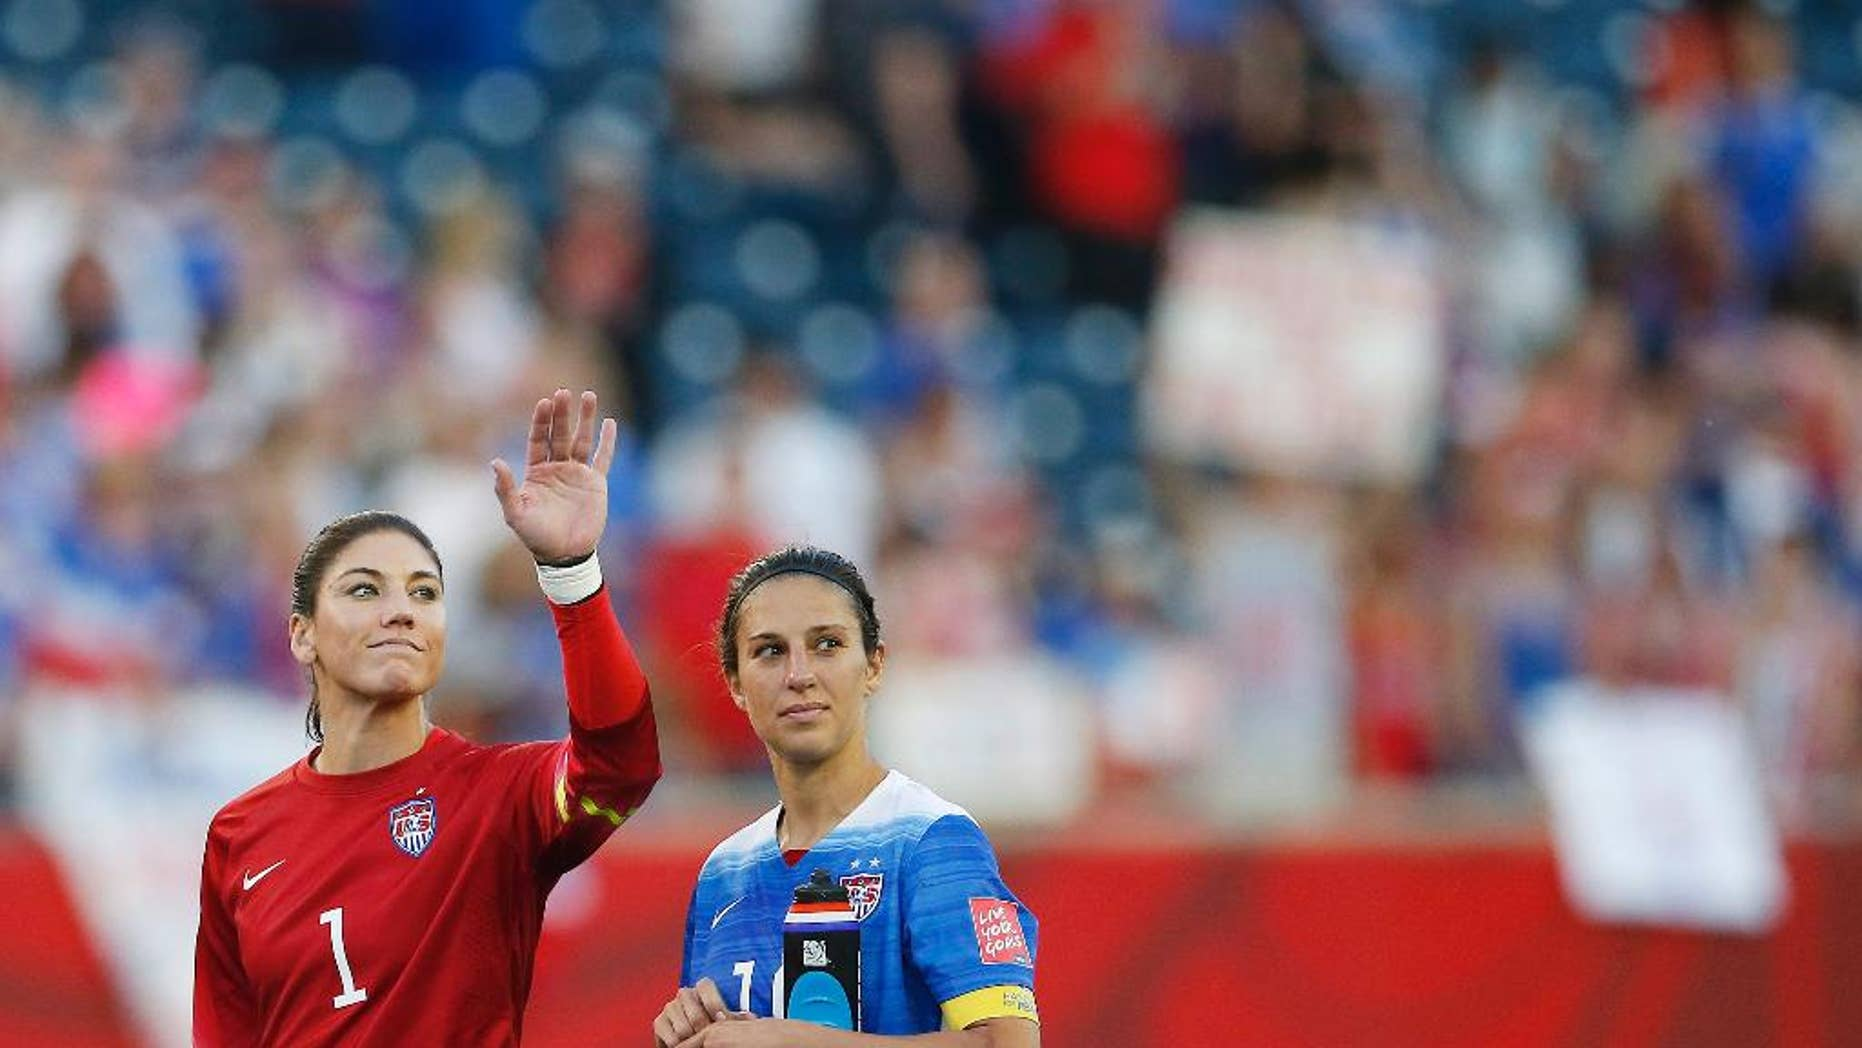 United States goalkeeper Hope Solo (1) waves to the crowd next to teammate Carli Lloyd (10) after their draw against Sweden in FIFA Women's World Cup soccer game action in Winnipeg, Manitoba, Canada, Friday, June 12, 2015. (John Woods/The Canadian Press via AP) MANDATORY CREDIT